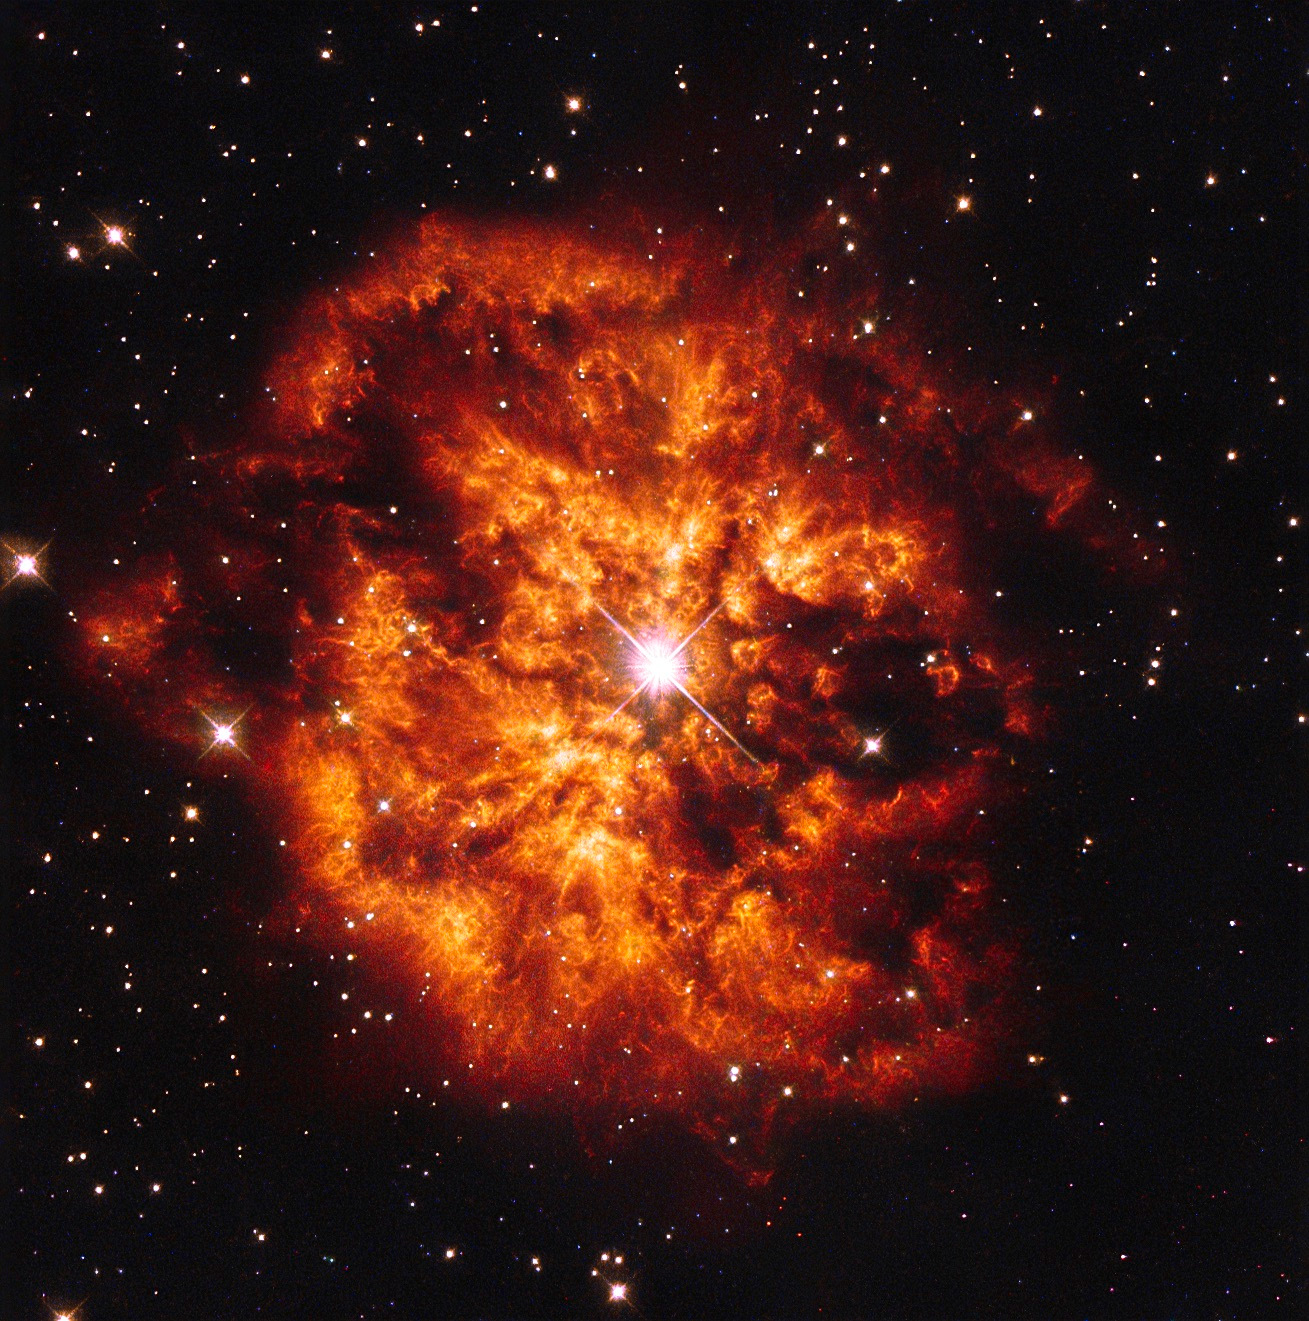 In this NASA/ESA Hubble Space Telescope image we see the central Wolf-Rayet star known as Hen 2-427 — more commonly known as WR 124 — surrounded by the nebula M1-67. Both objects are found in the constellation of Sagitta some 15,000 light-years away. The hot clumps of gas ejected by the star into space are travelling at over 150,000 kilometres per hour. Image credit: ESA/Hubble & NASA. Acknowledgement: J. Schmidt.